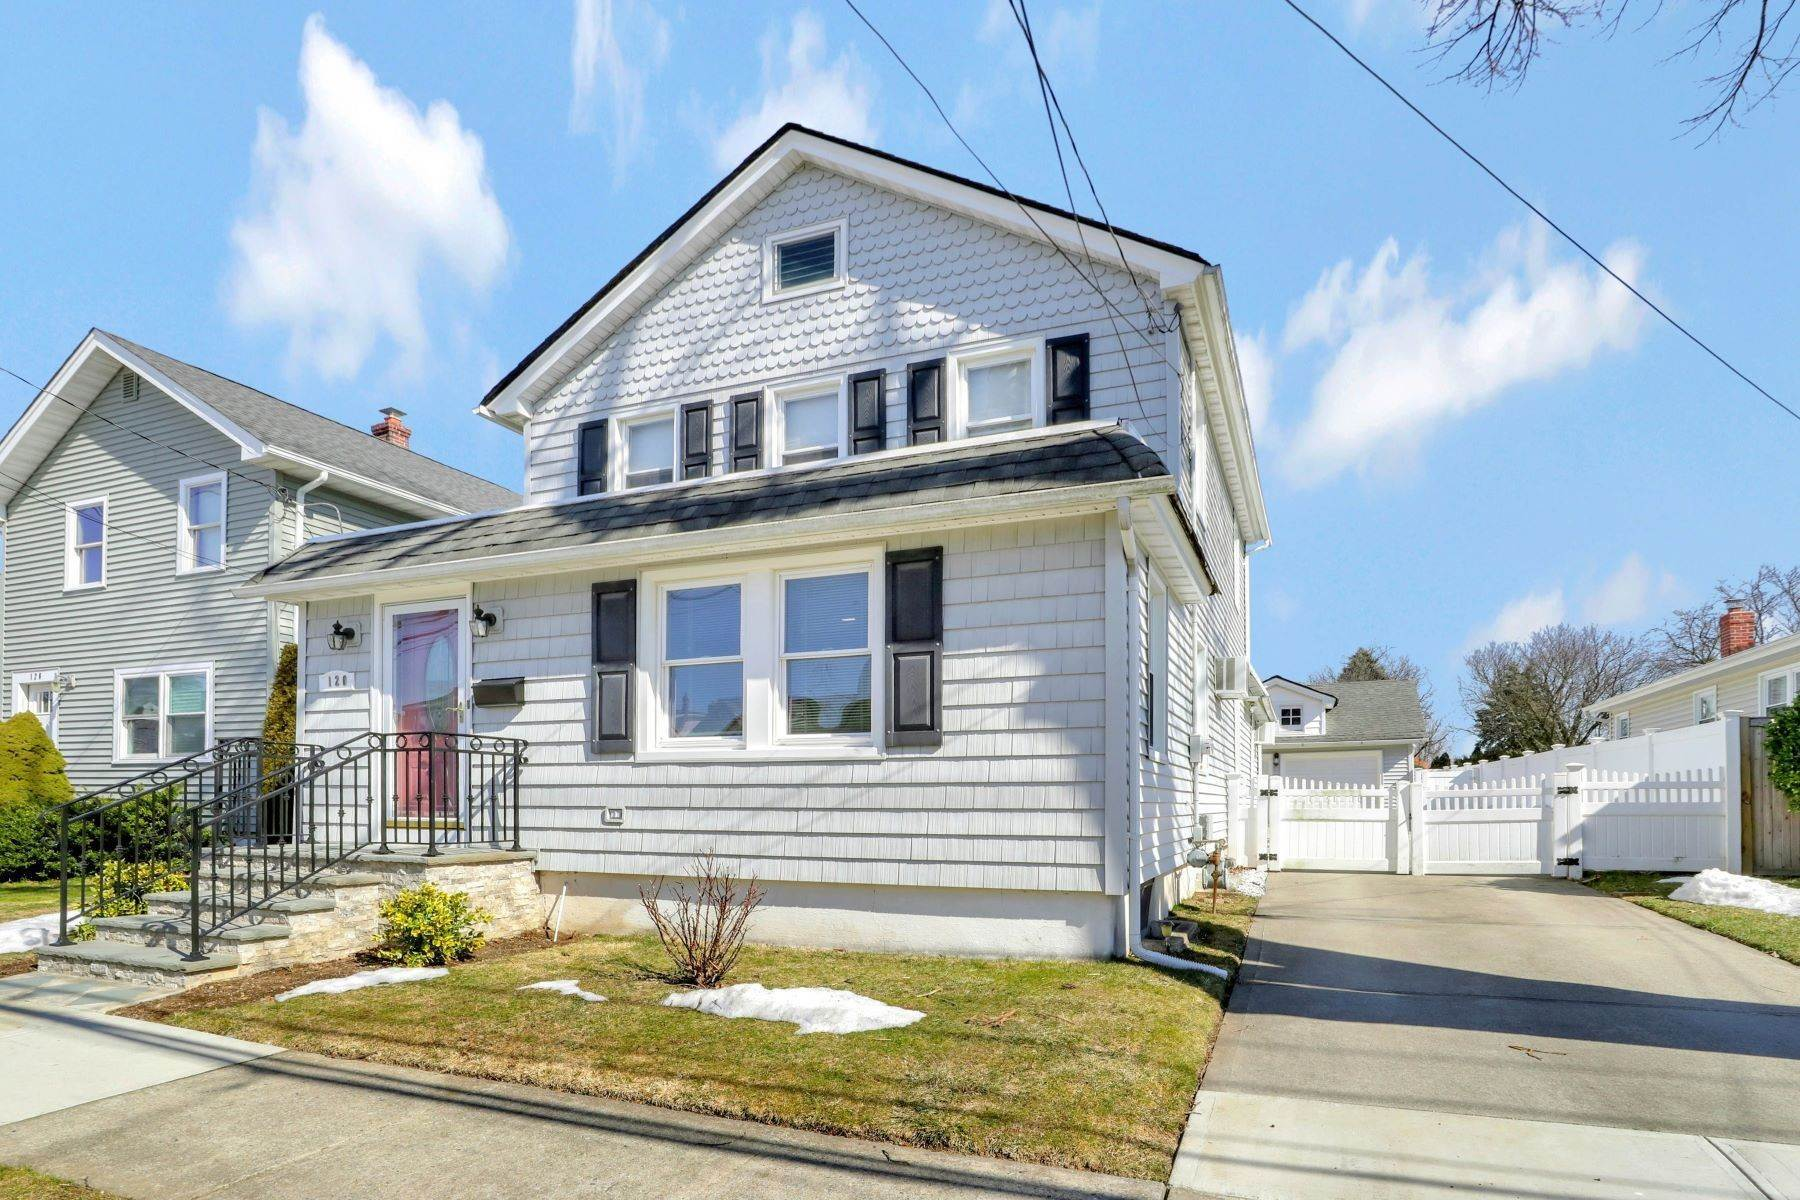 Single Family Homes for Sale at 120 Central Avenue, New Hyde Park, NY 11040 120 Central Avenue New Hyde Park, New York 11040 United States